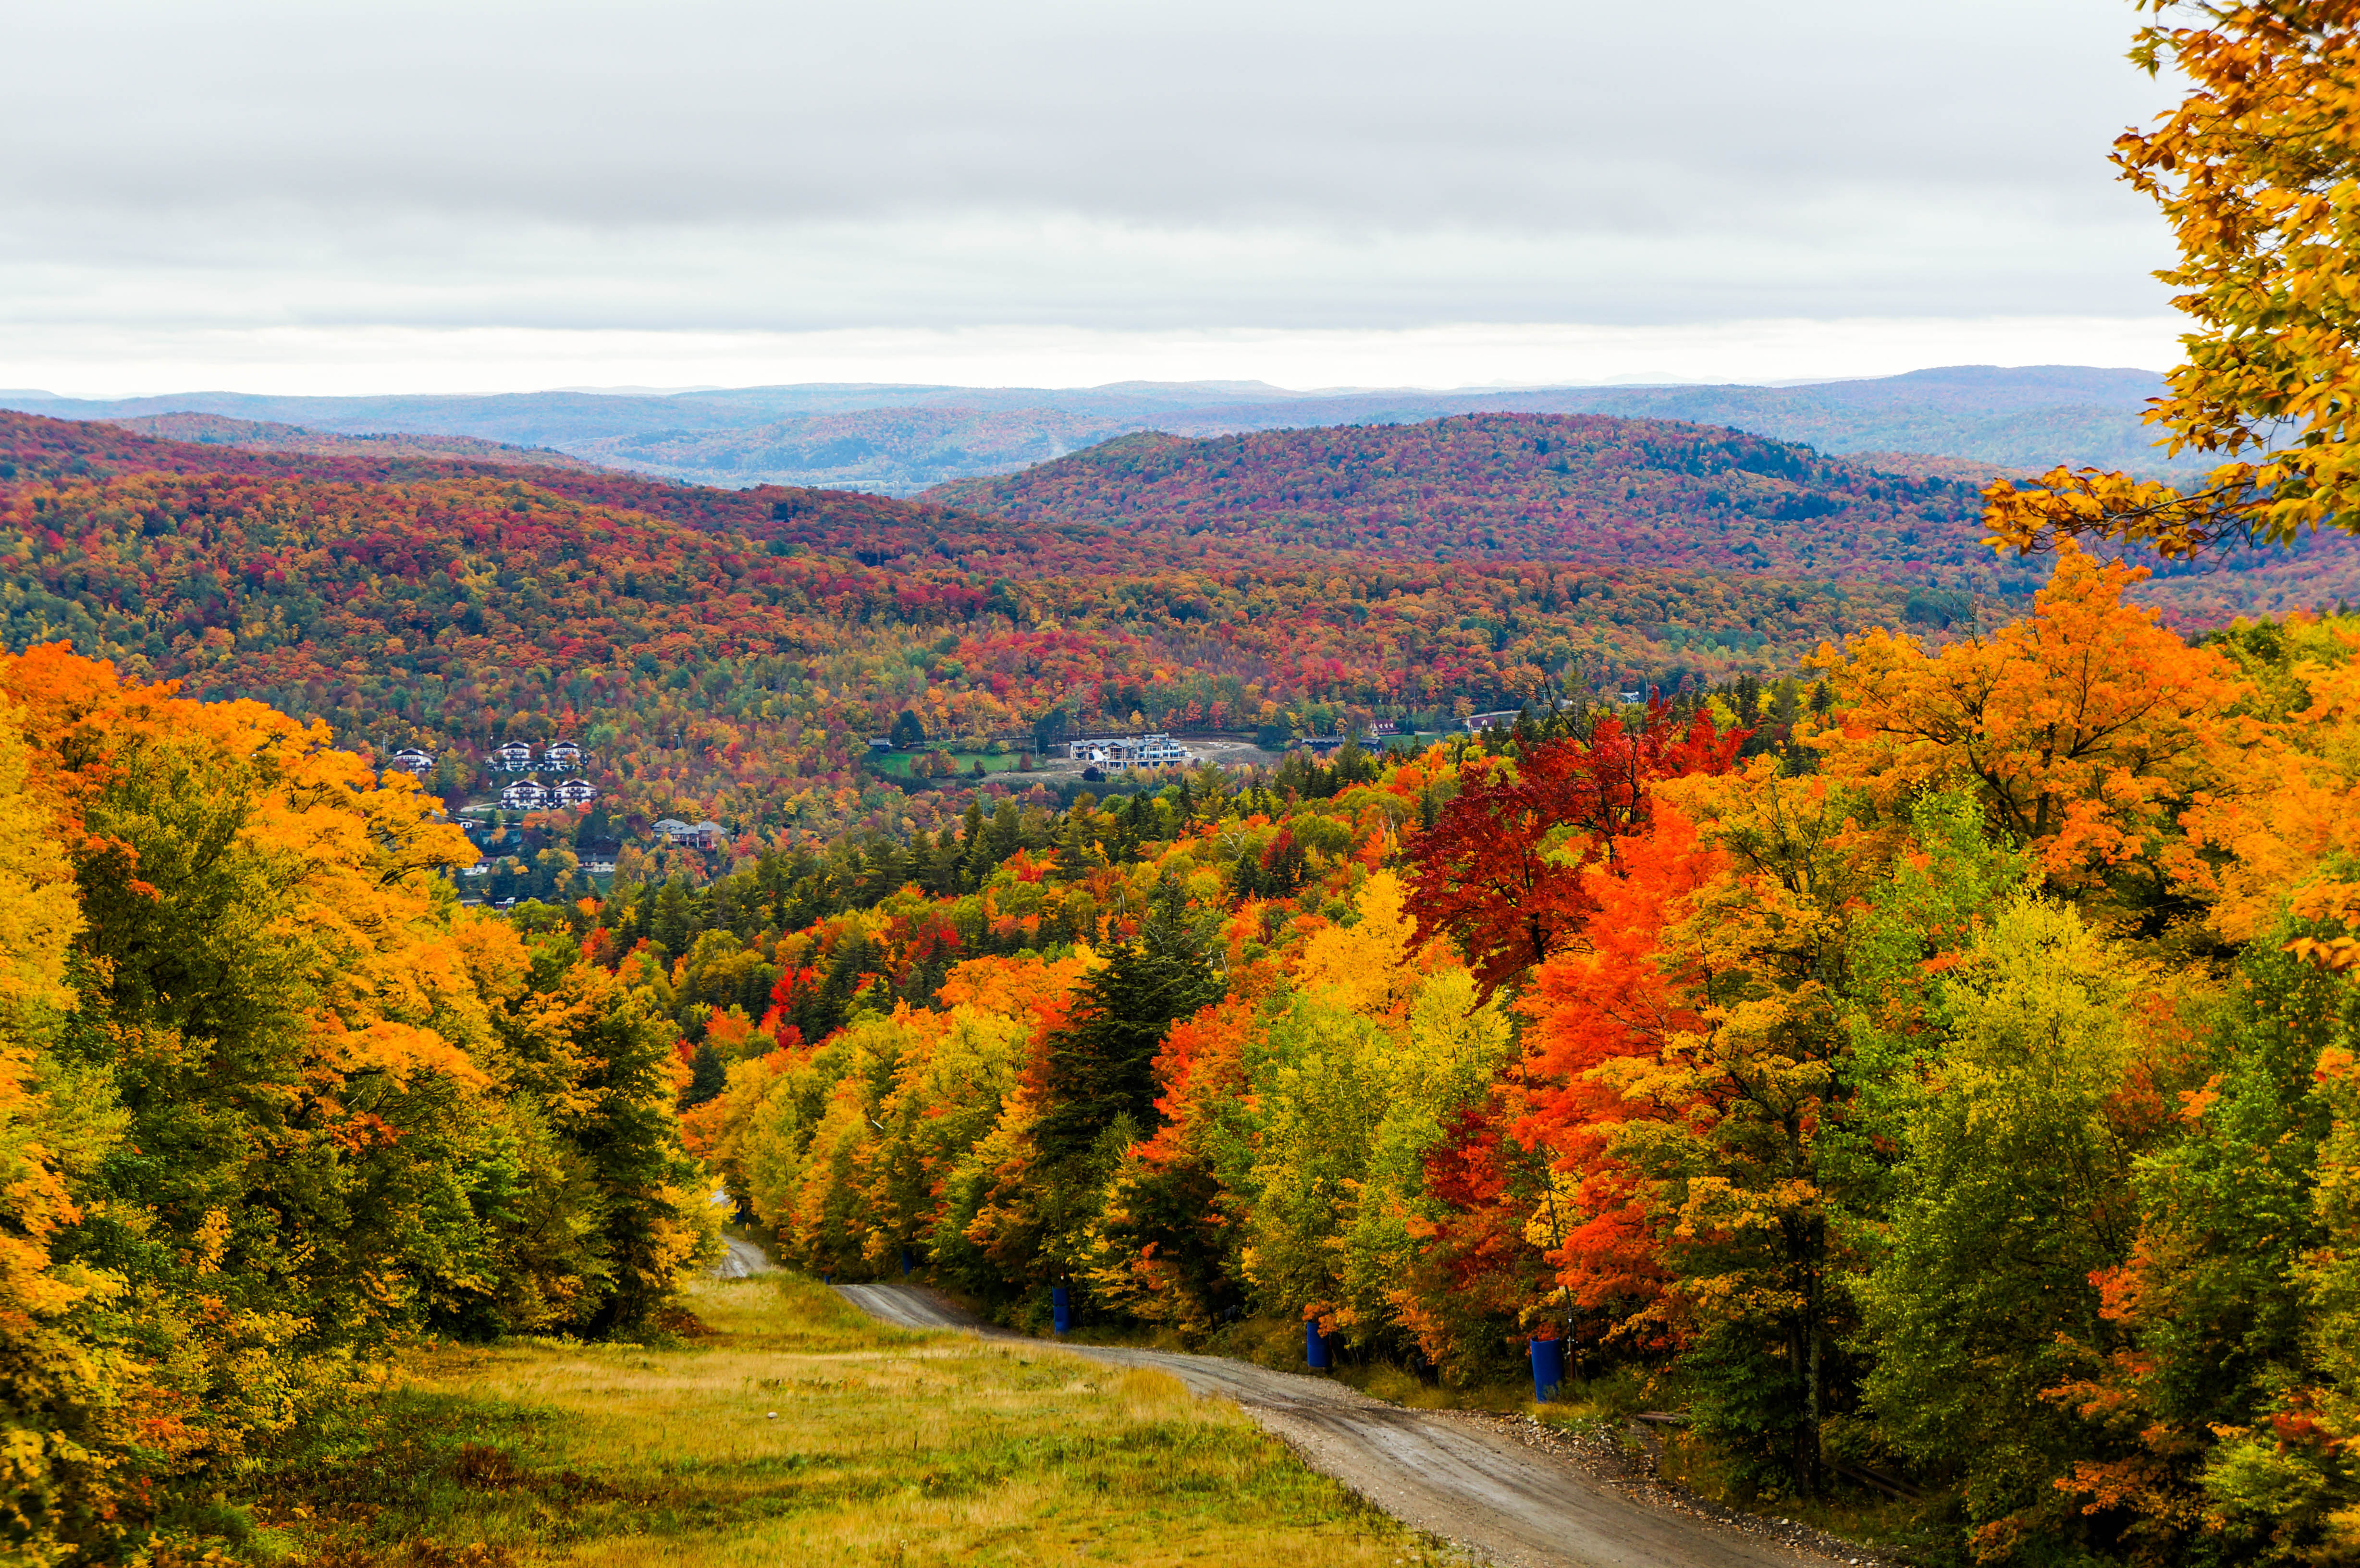 10 Best Places to See Fall Foliage in Canada - TripSavvy